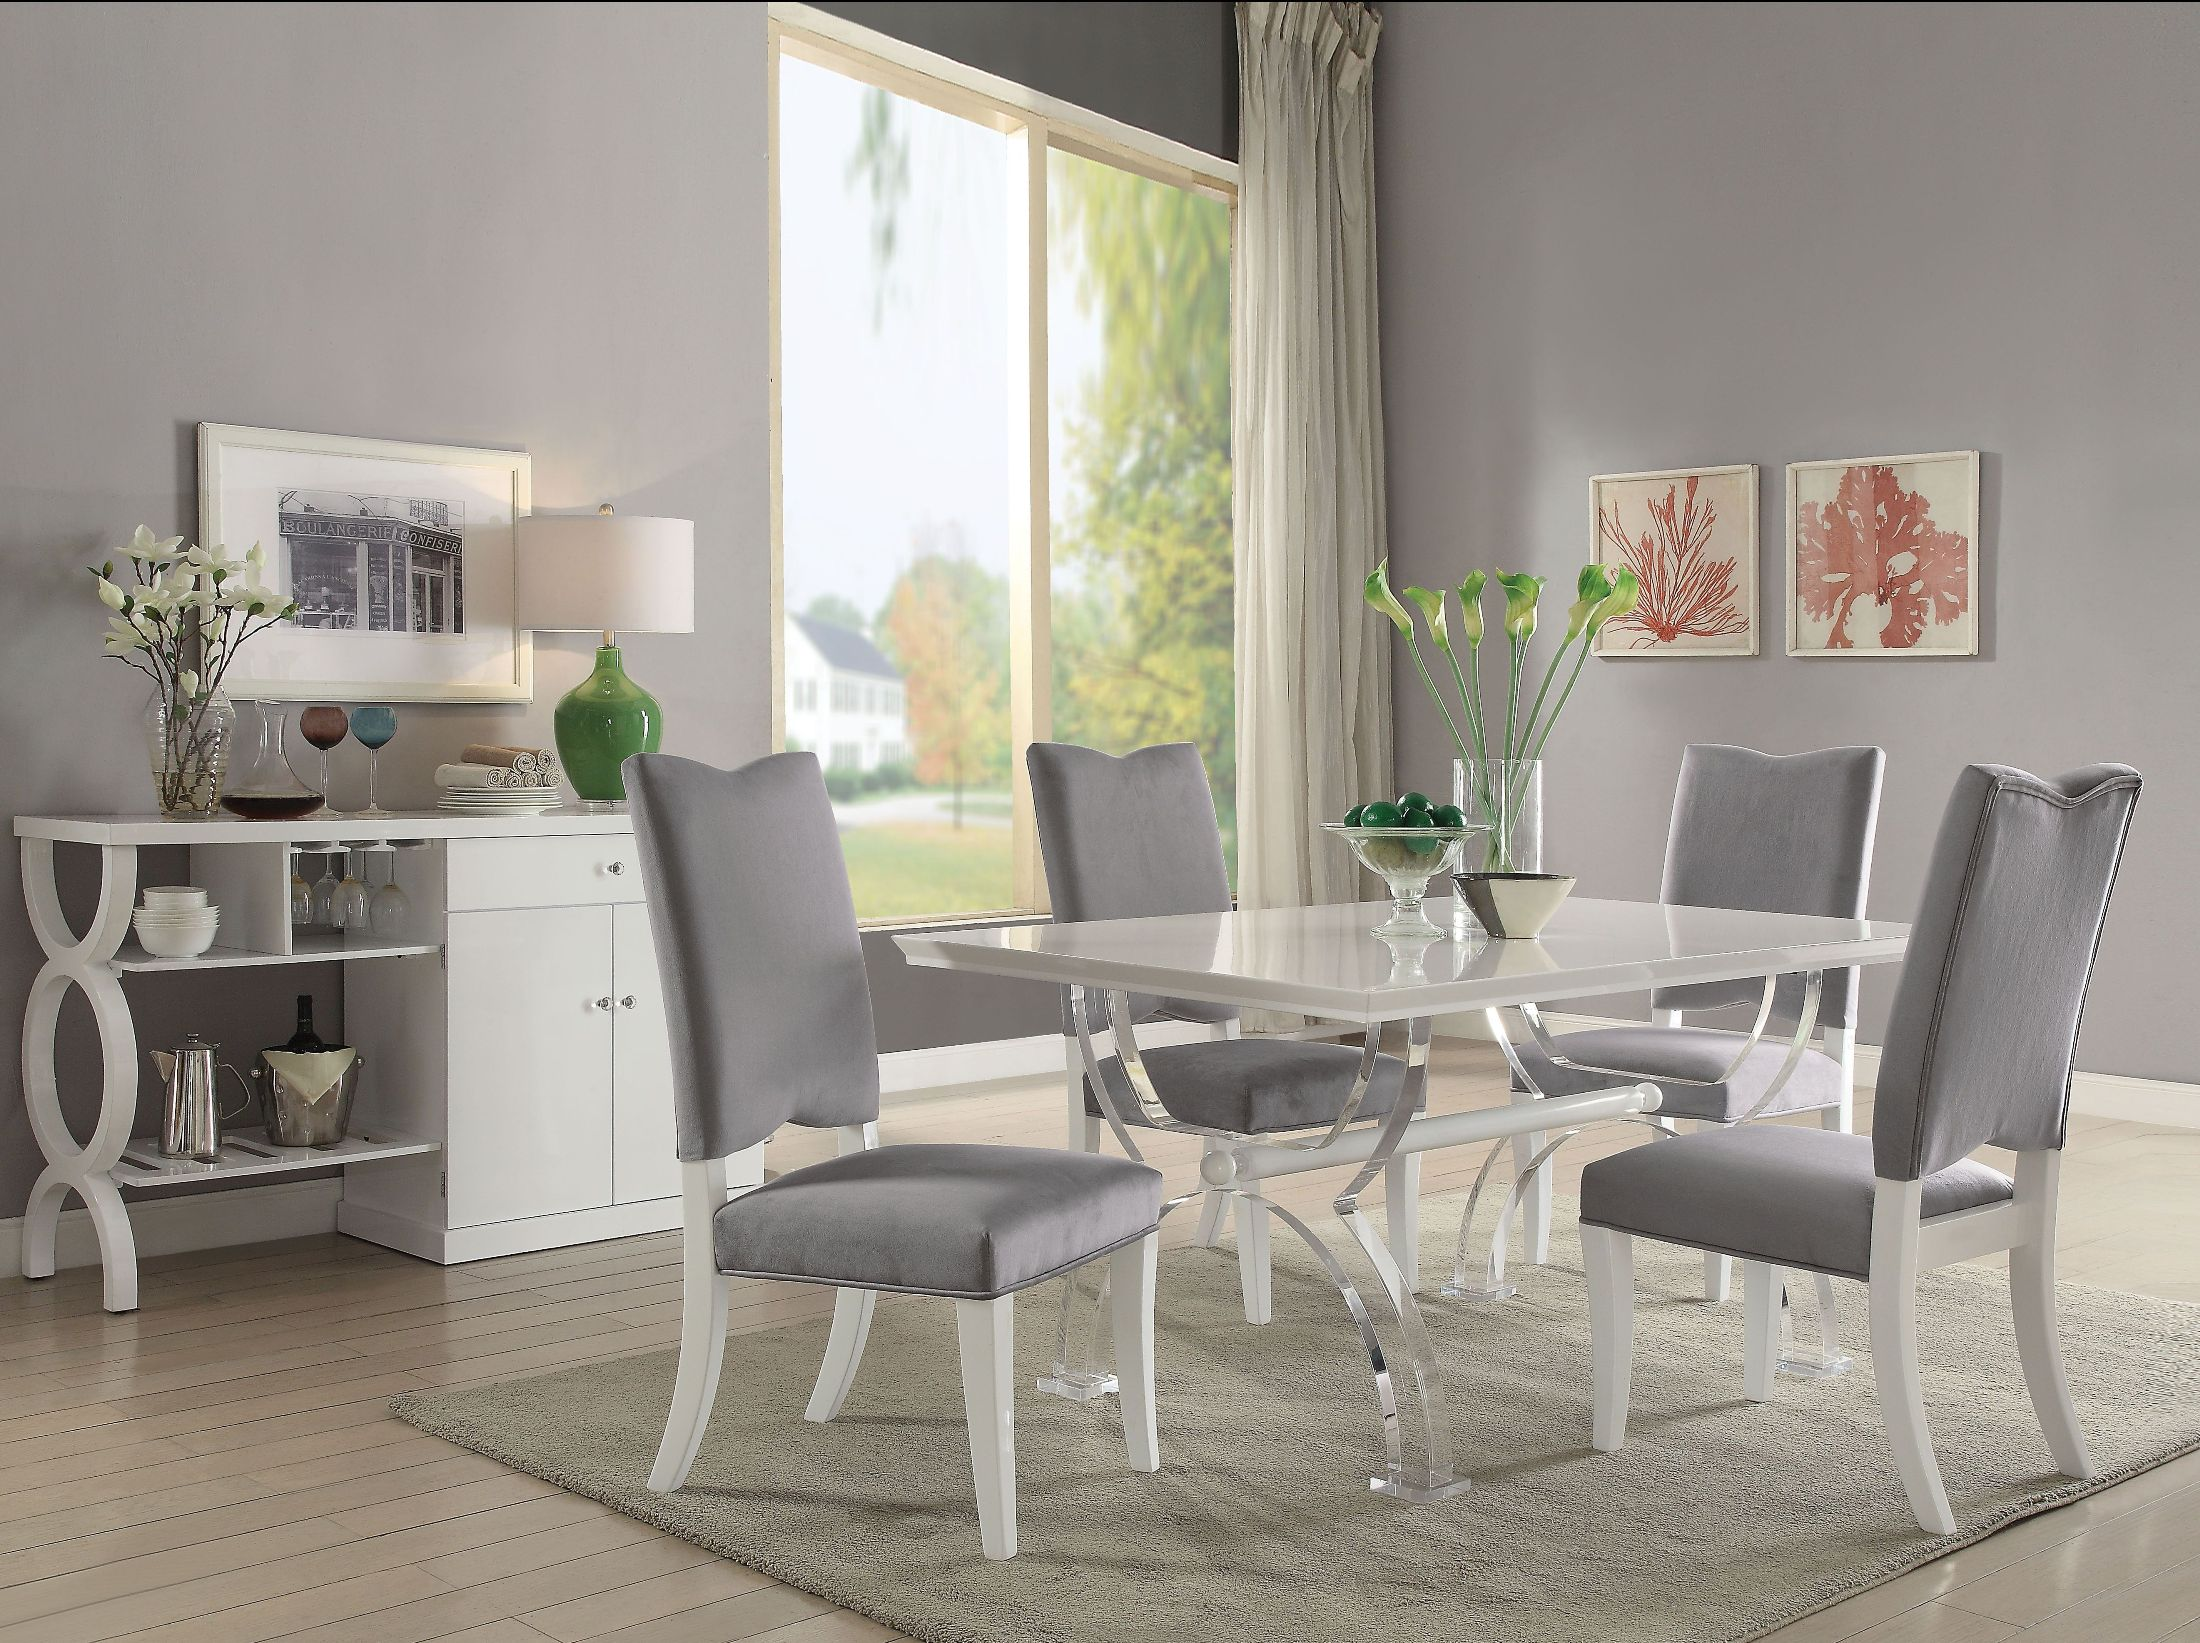 Martinus High Gloss White And Clear Acrylic Dining Room Set